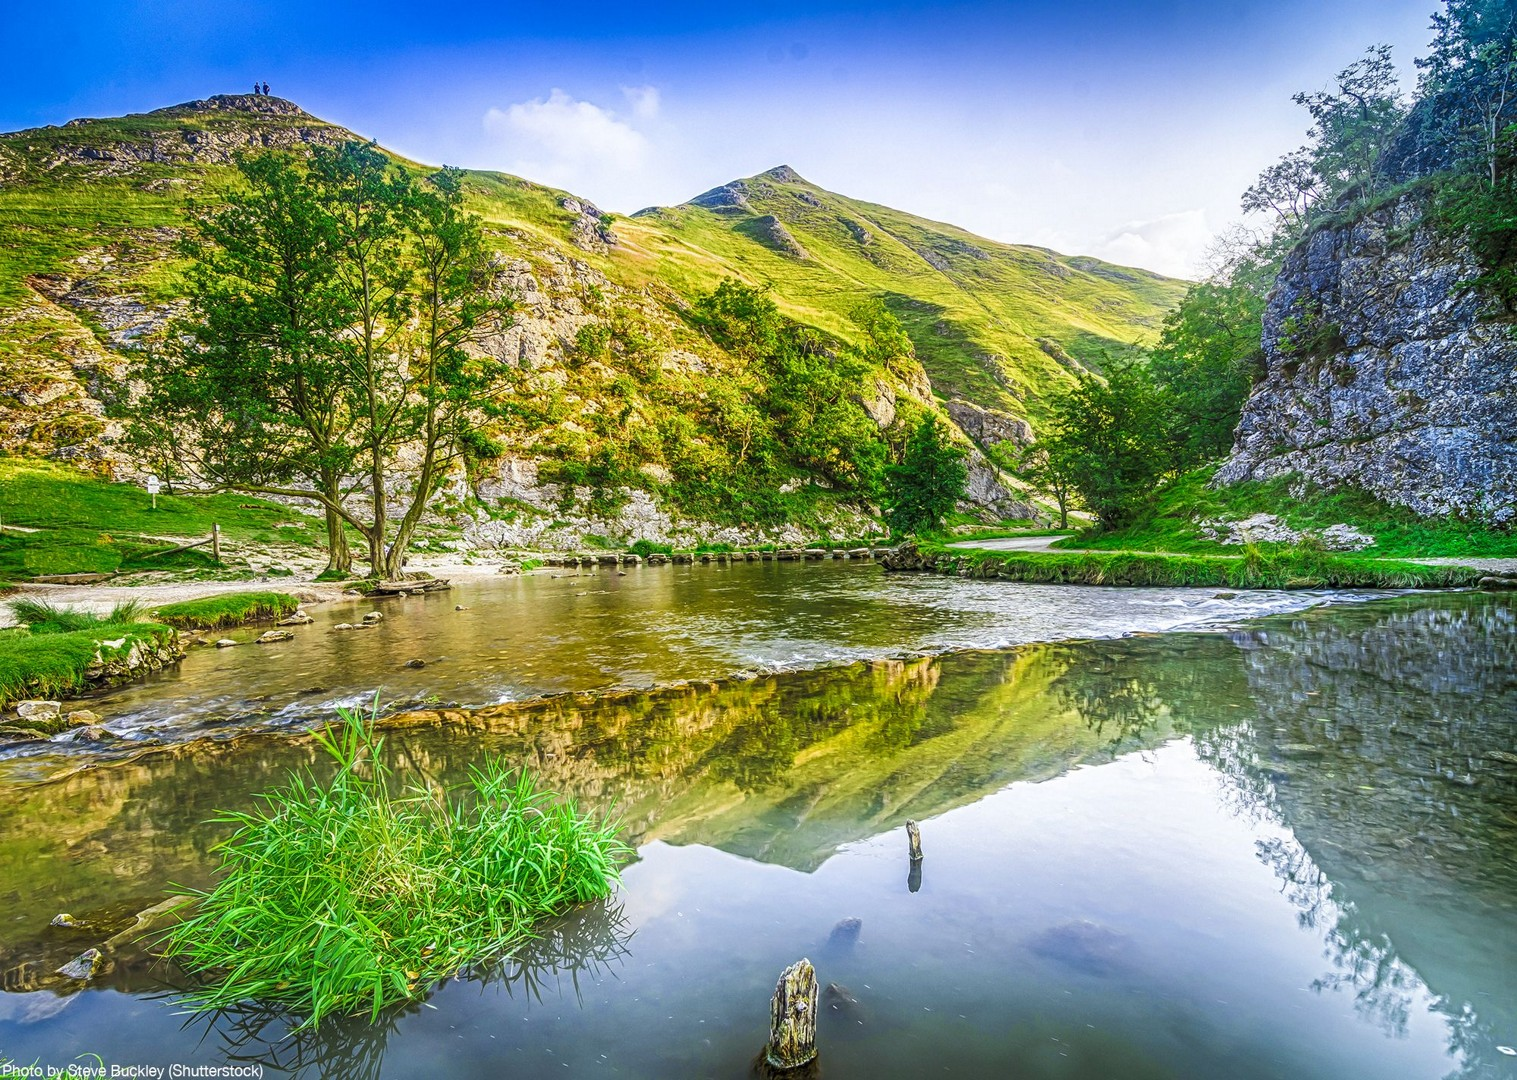 shutterstock_152428157-3.jpg - UK - Derbyshire Dales - Dovedale - Self-Guided Leisure Cycling Holiday - Leisure Cycling